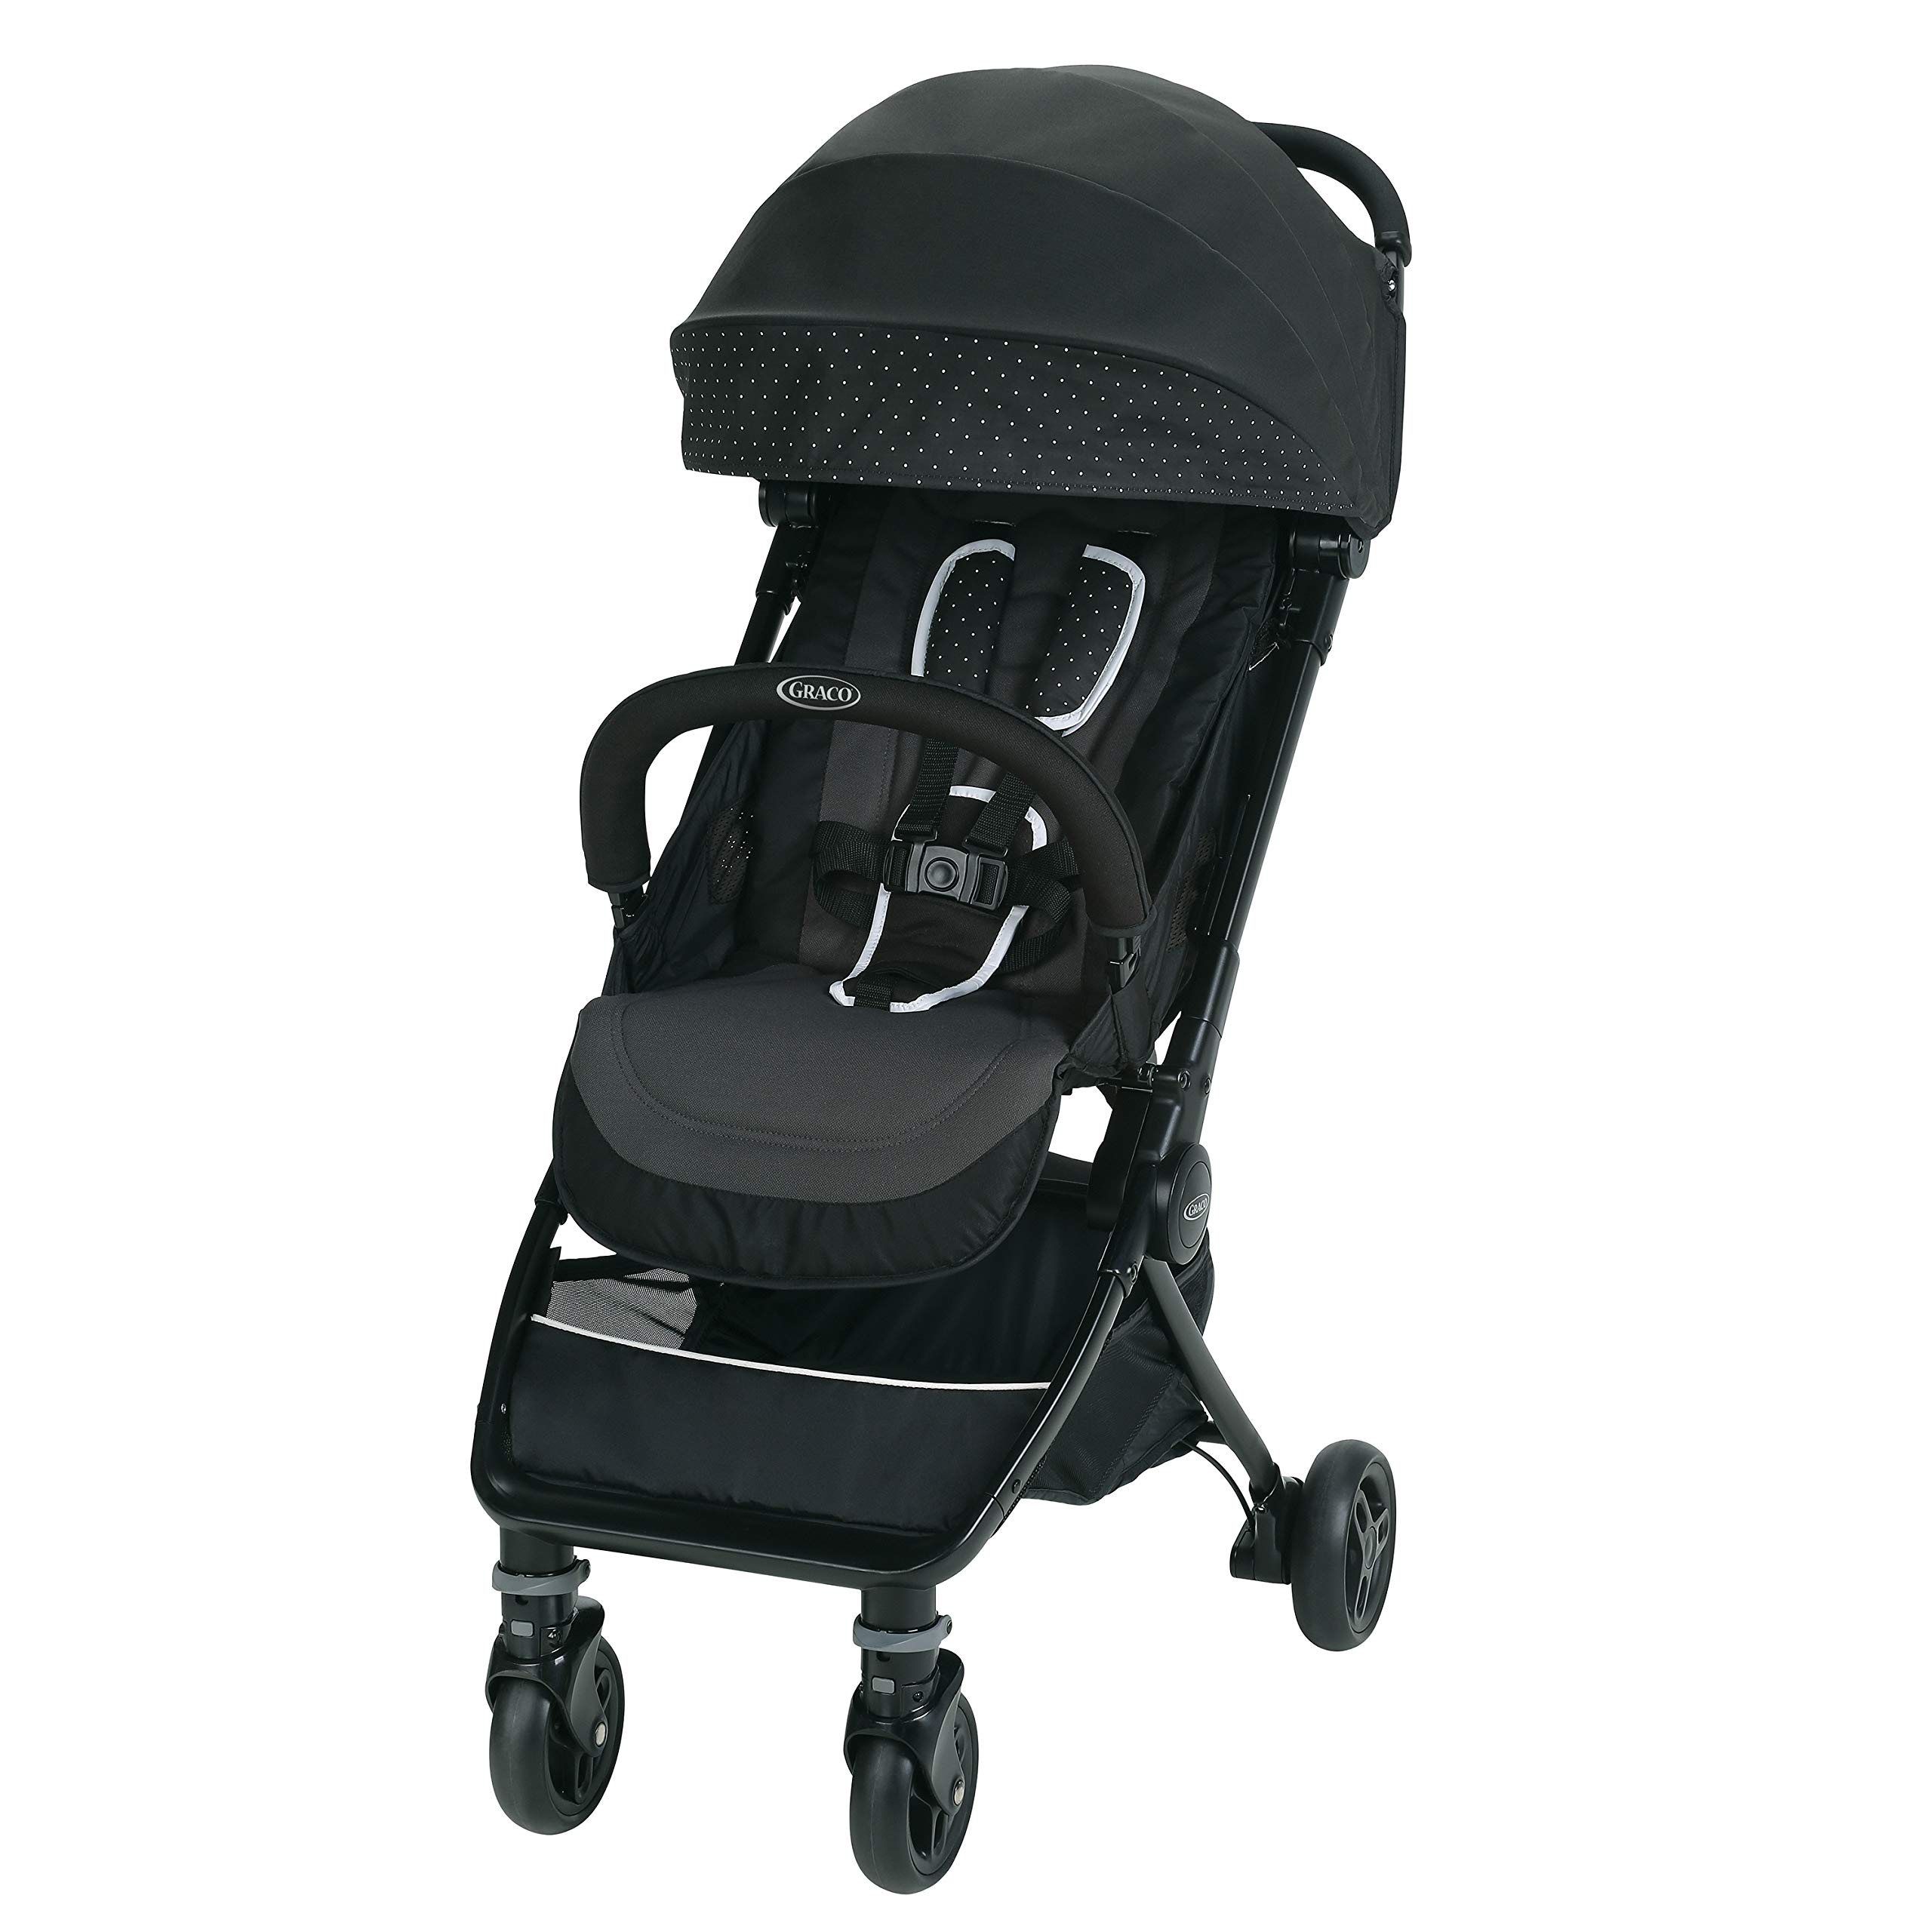 Graco Jetsetter Stroller, Balancing Act by Graco